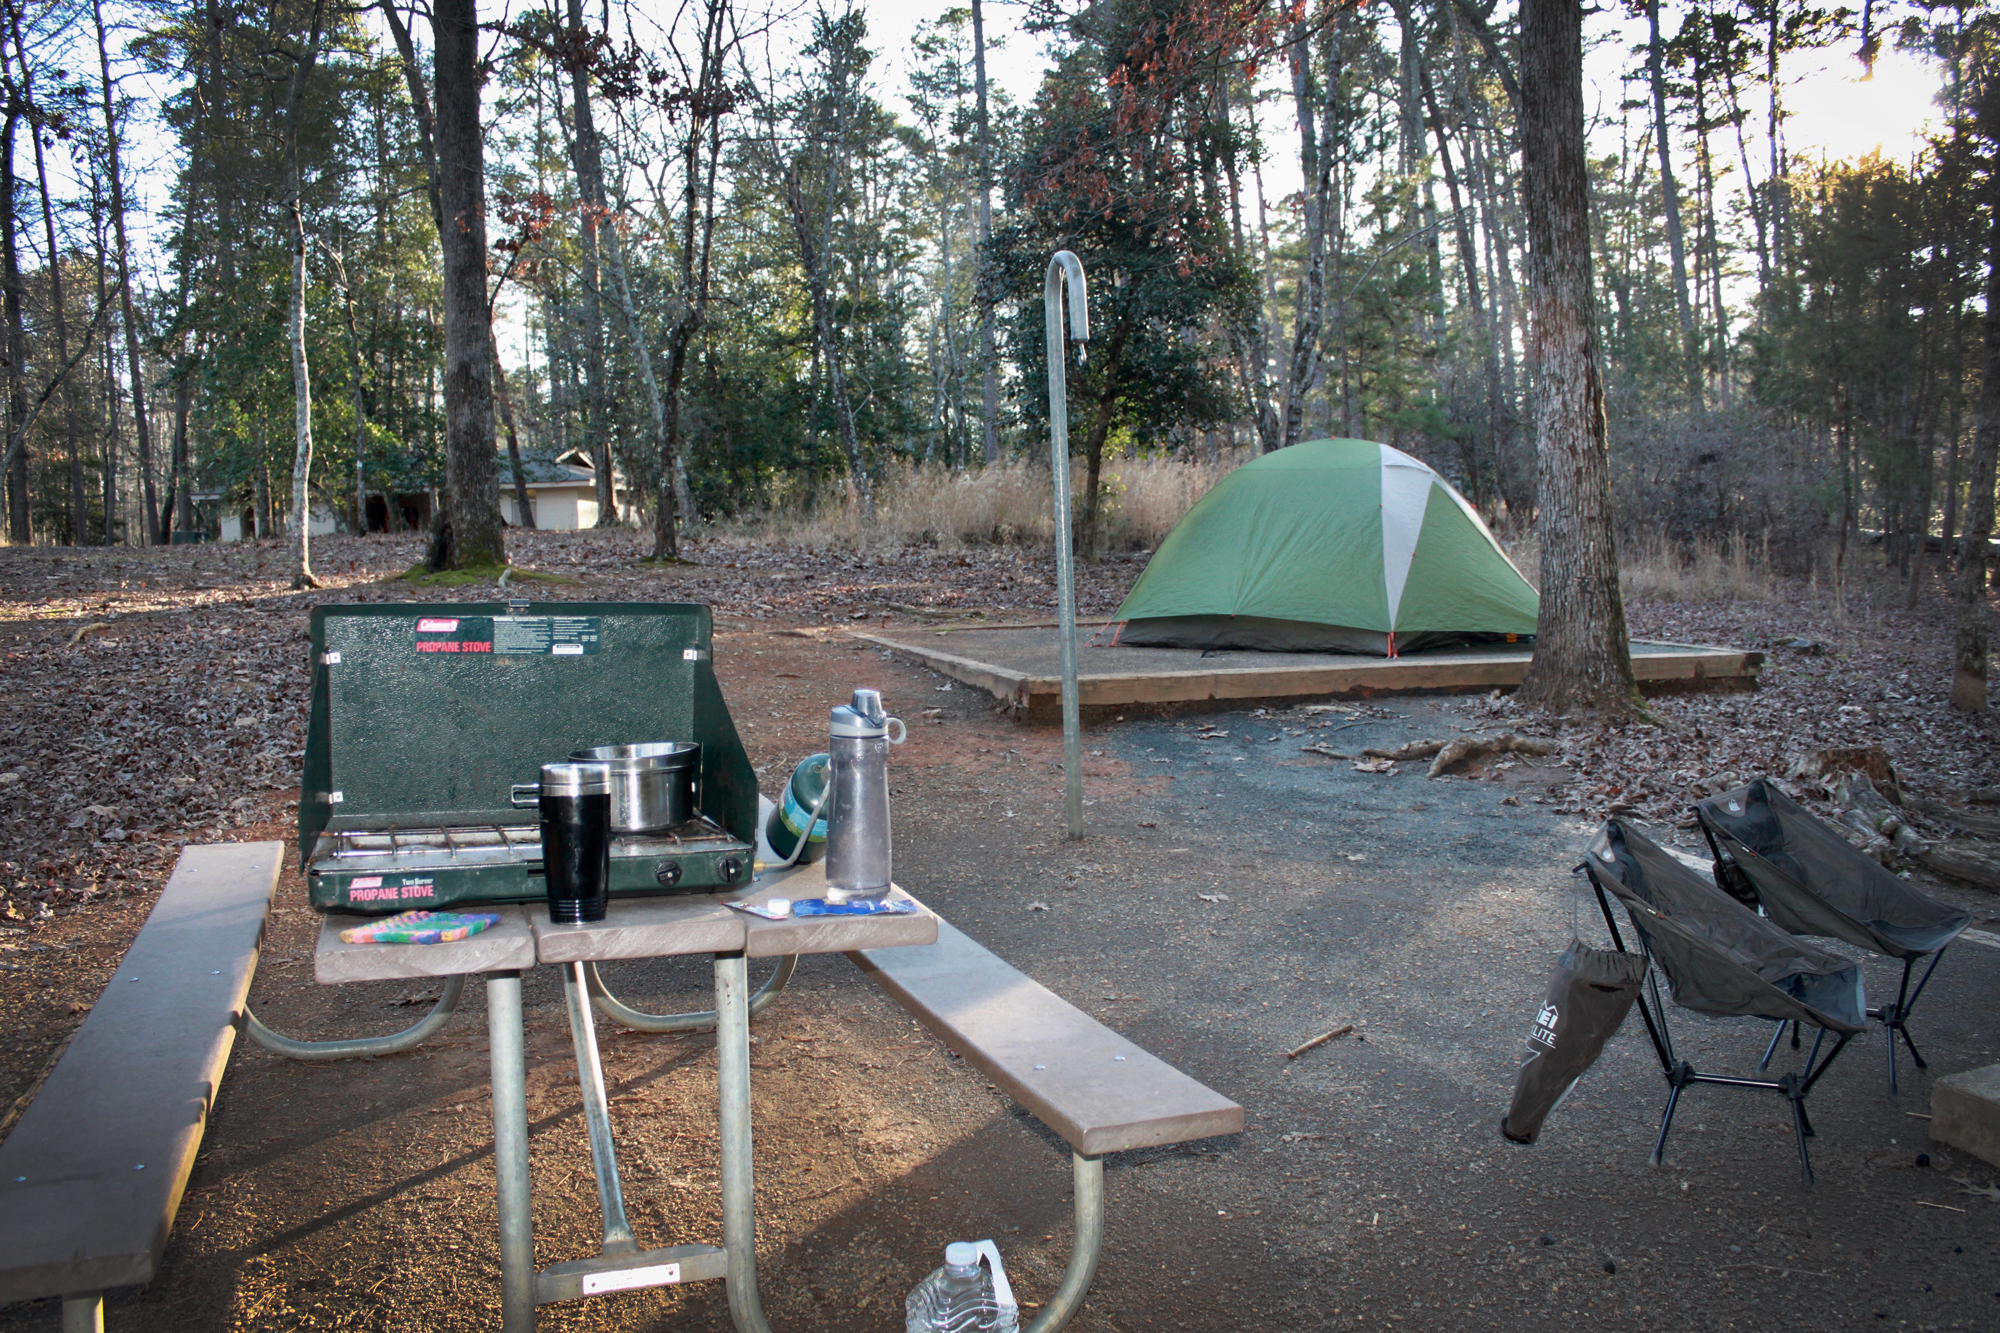 Tent and camping gear at the campsite  in Morrow Mountain State Park, North Carolina